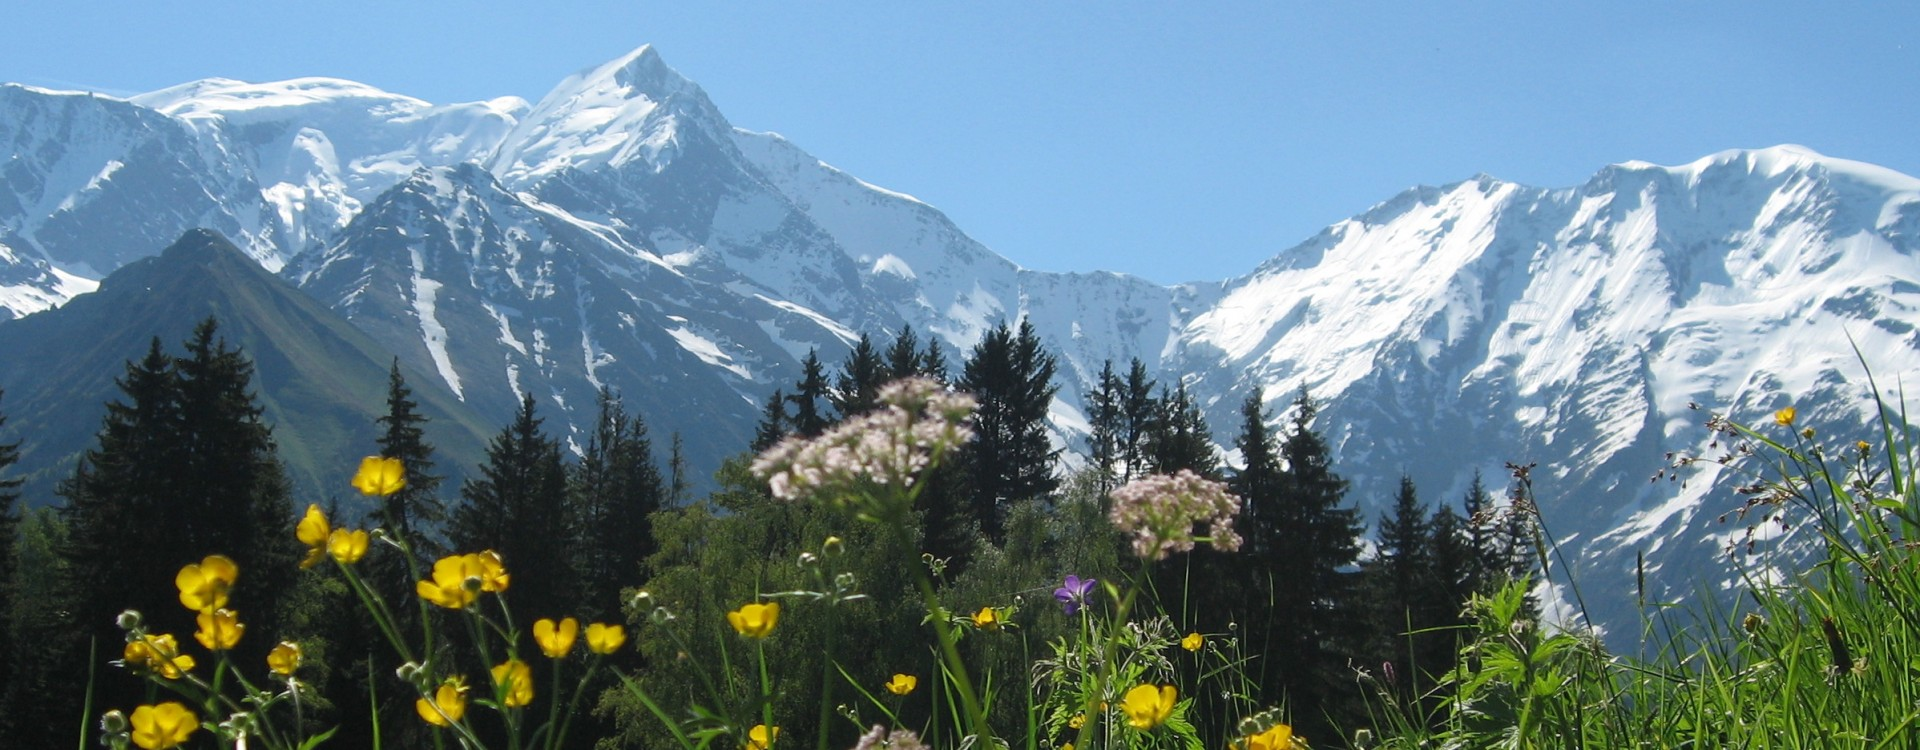 View of Mont Blanc from the hike from Le Bettex to Saint Nicholas de Veroce